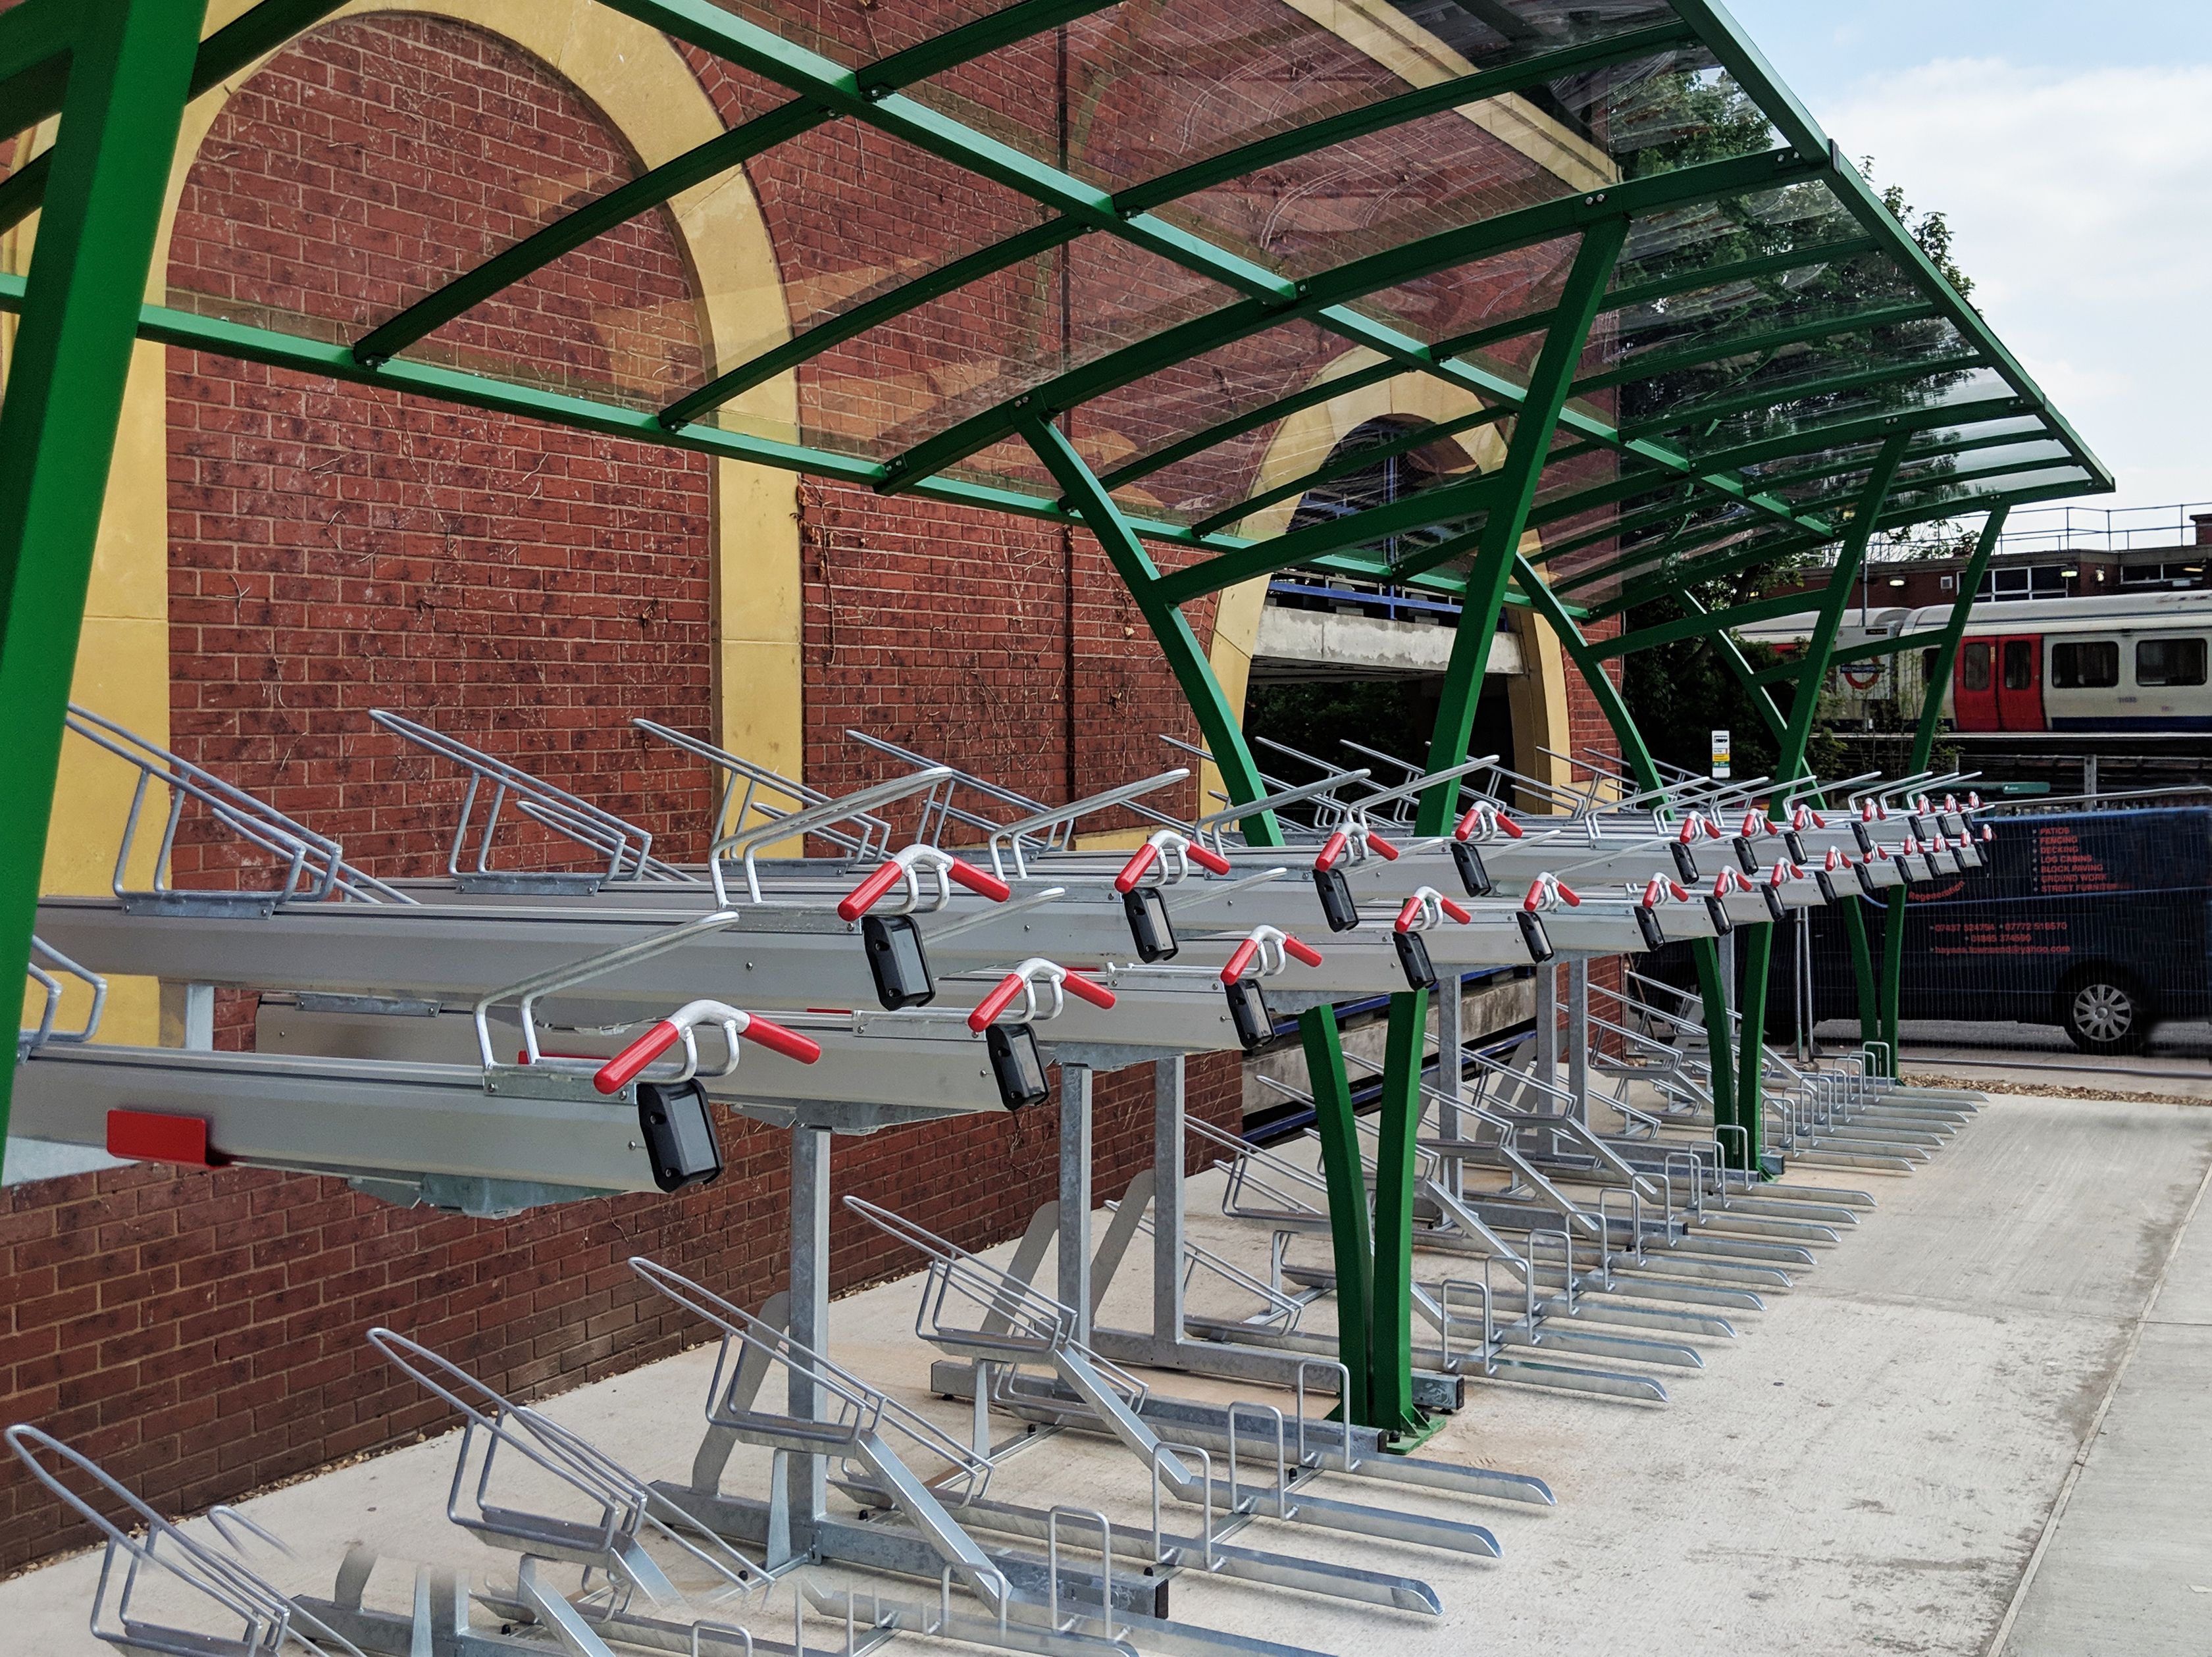 Two-Tier Cycle Parking Racks